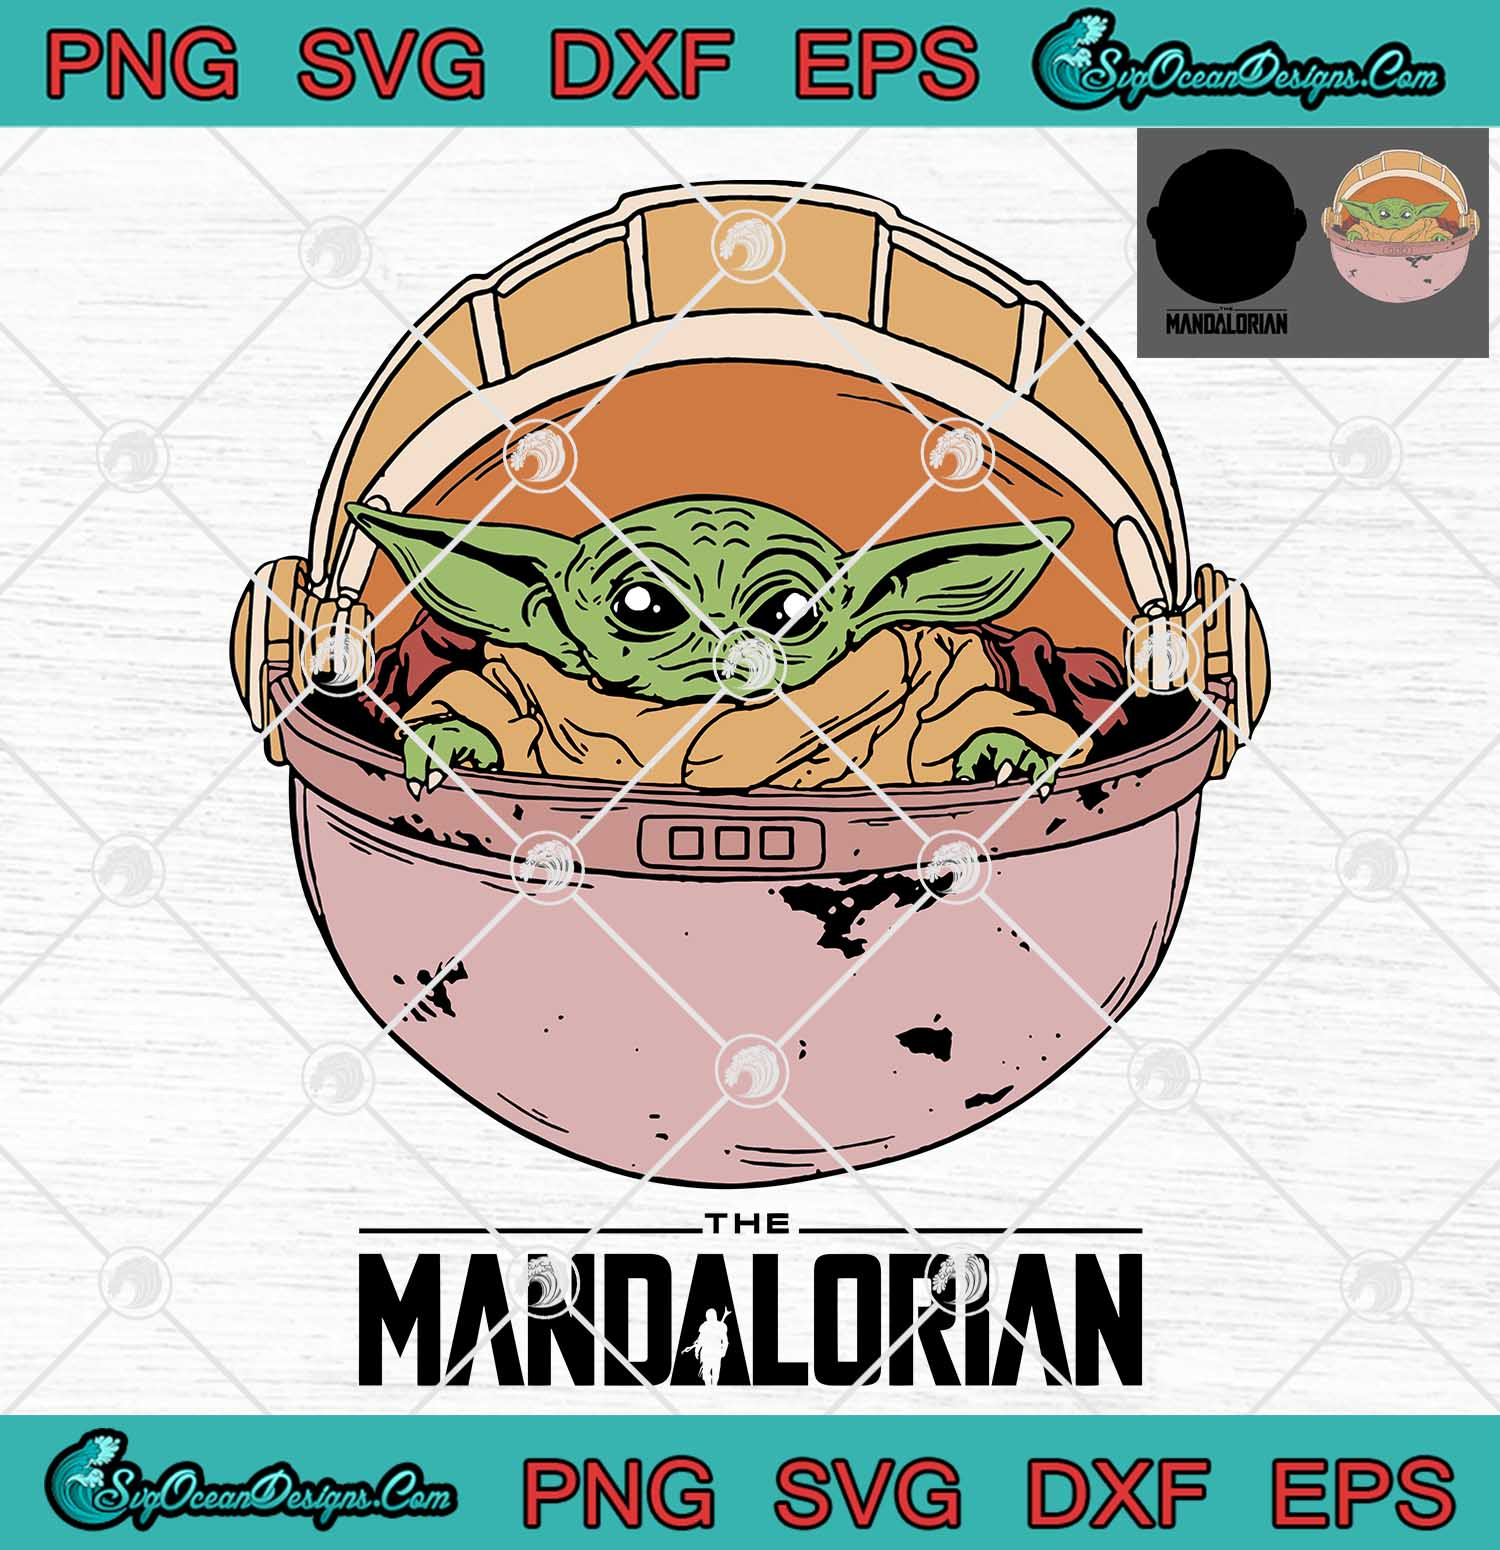 Baby Yoda The Mandalorian Star Wars Svg Png Eps Dxf Cricut File Silhouette Svg Designs Digital Download